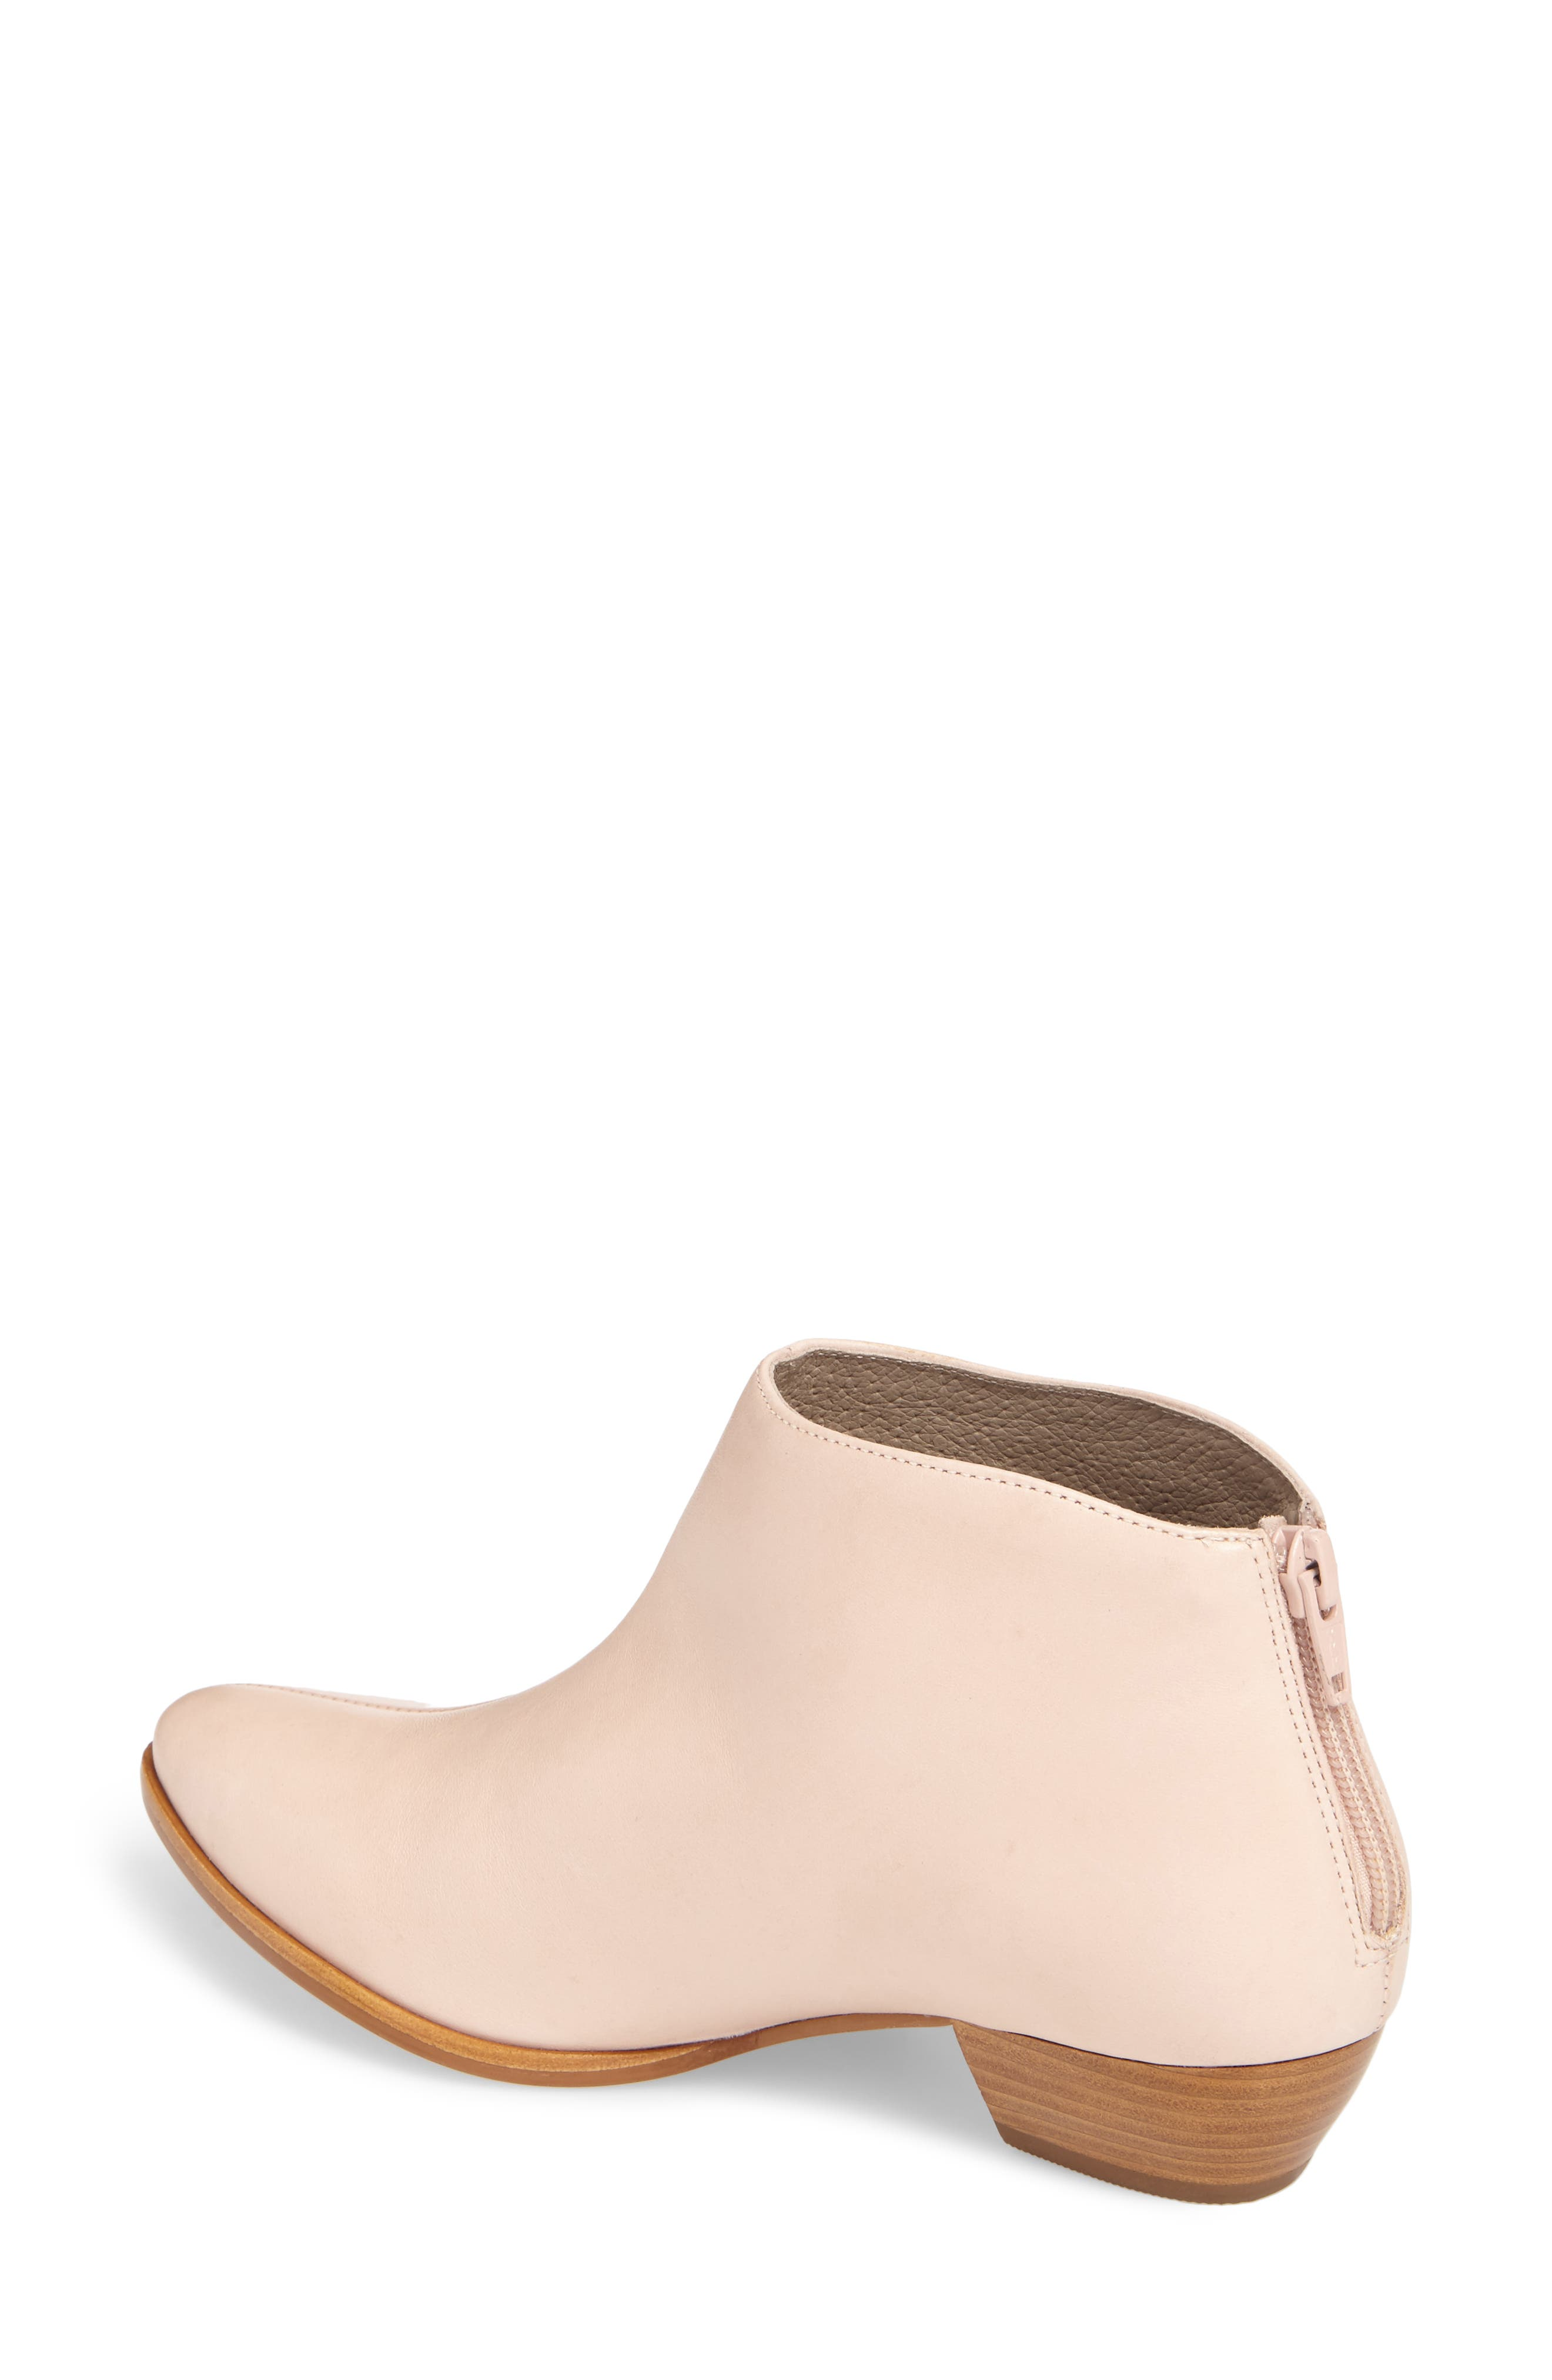 Aida Low Bootie,                             Alternate thumbnail 2, color,                             NUDE LEATHER